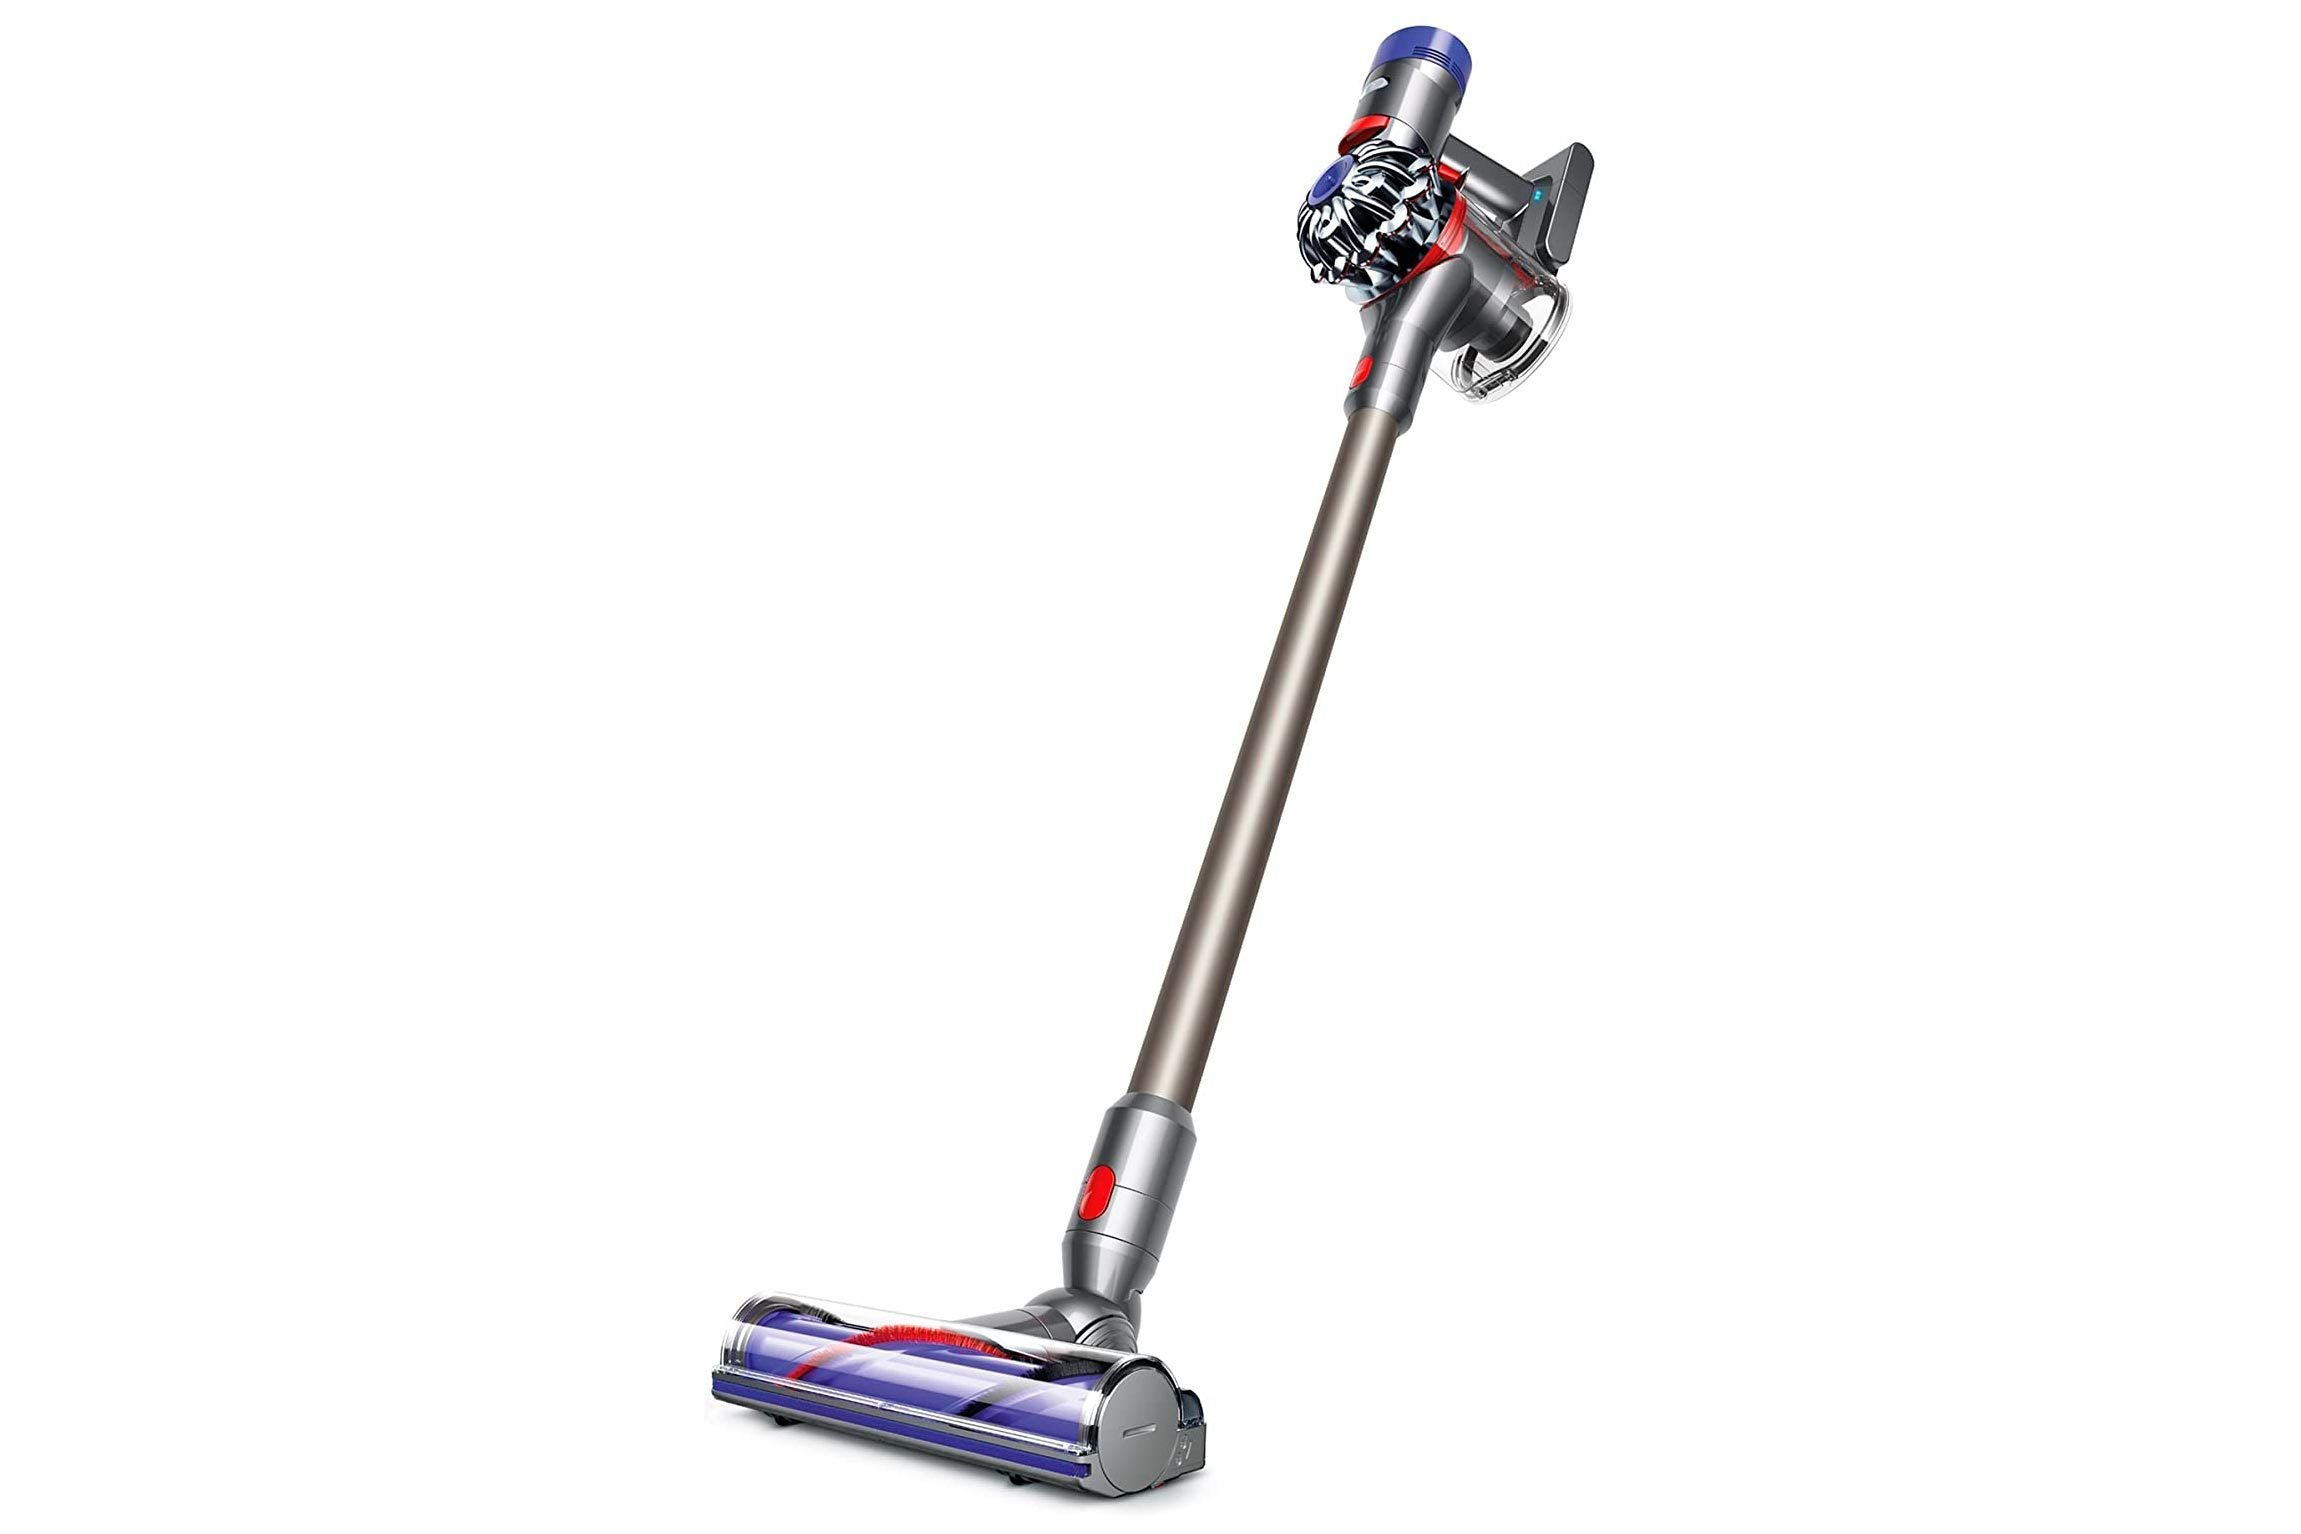 dyson v8 cordless vacuum cleaner